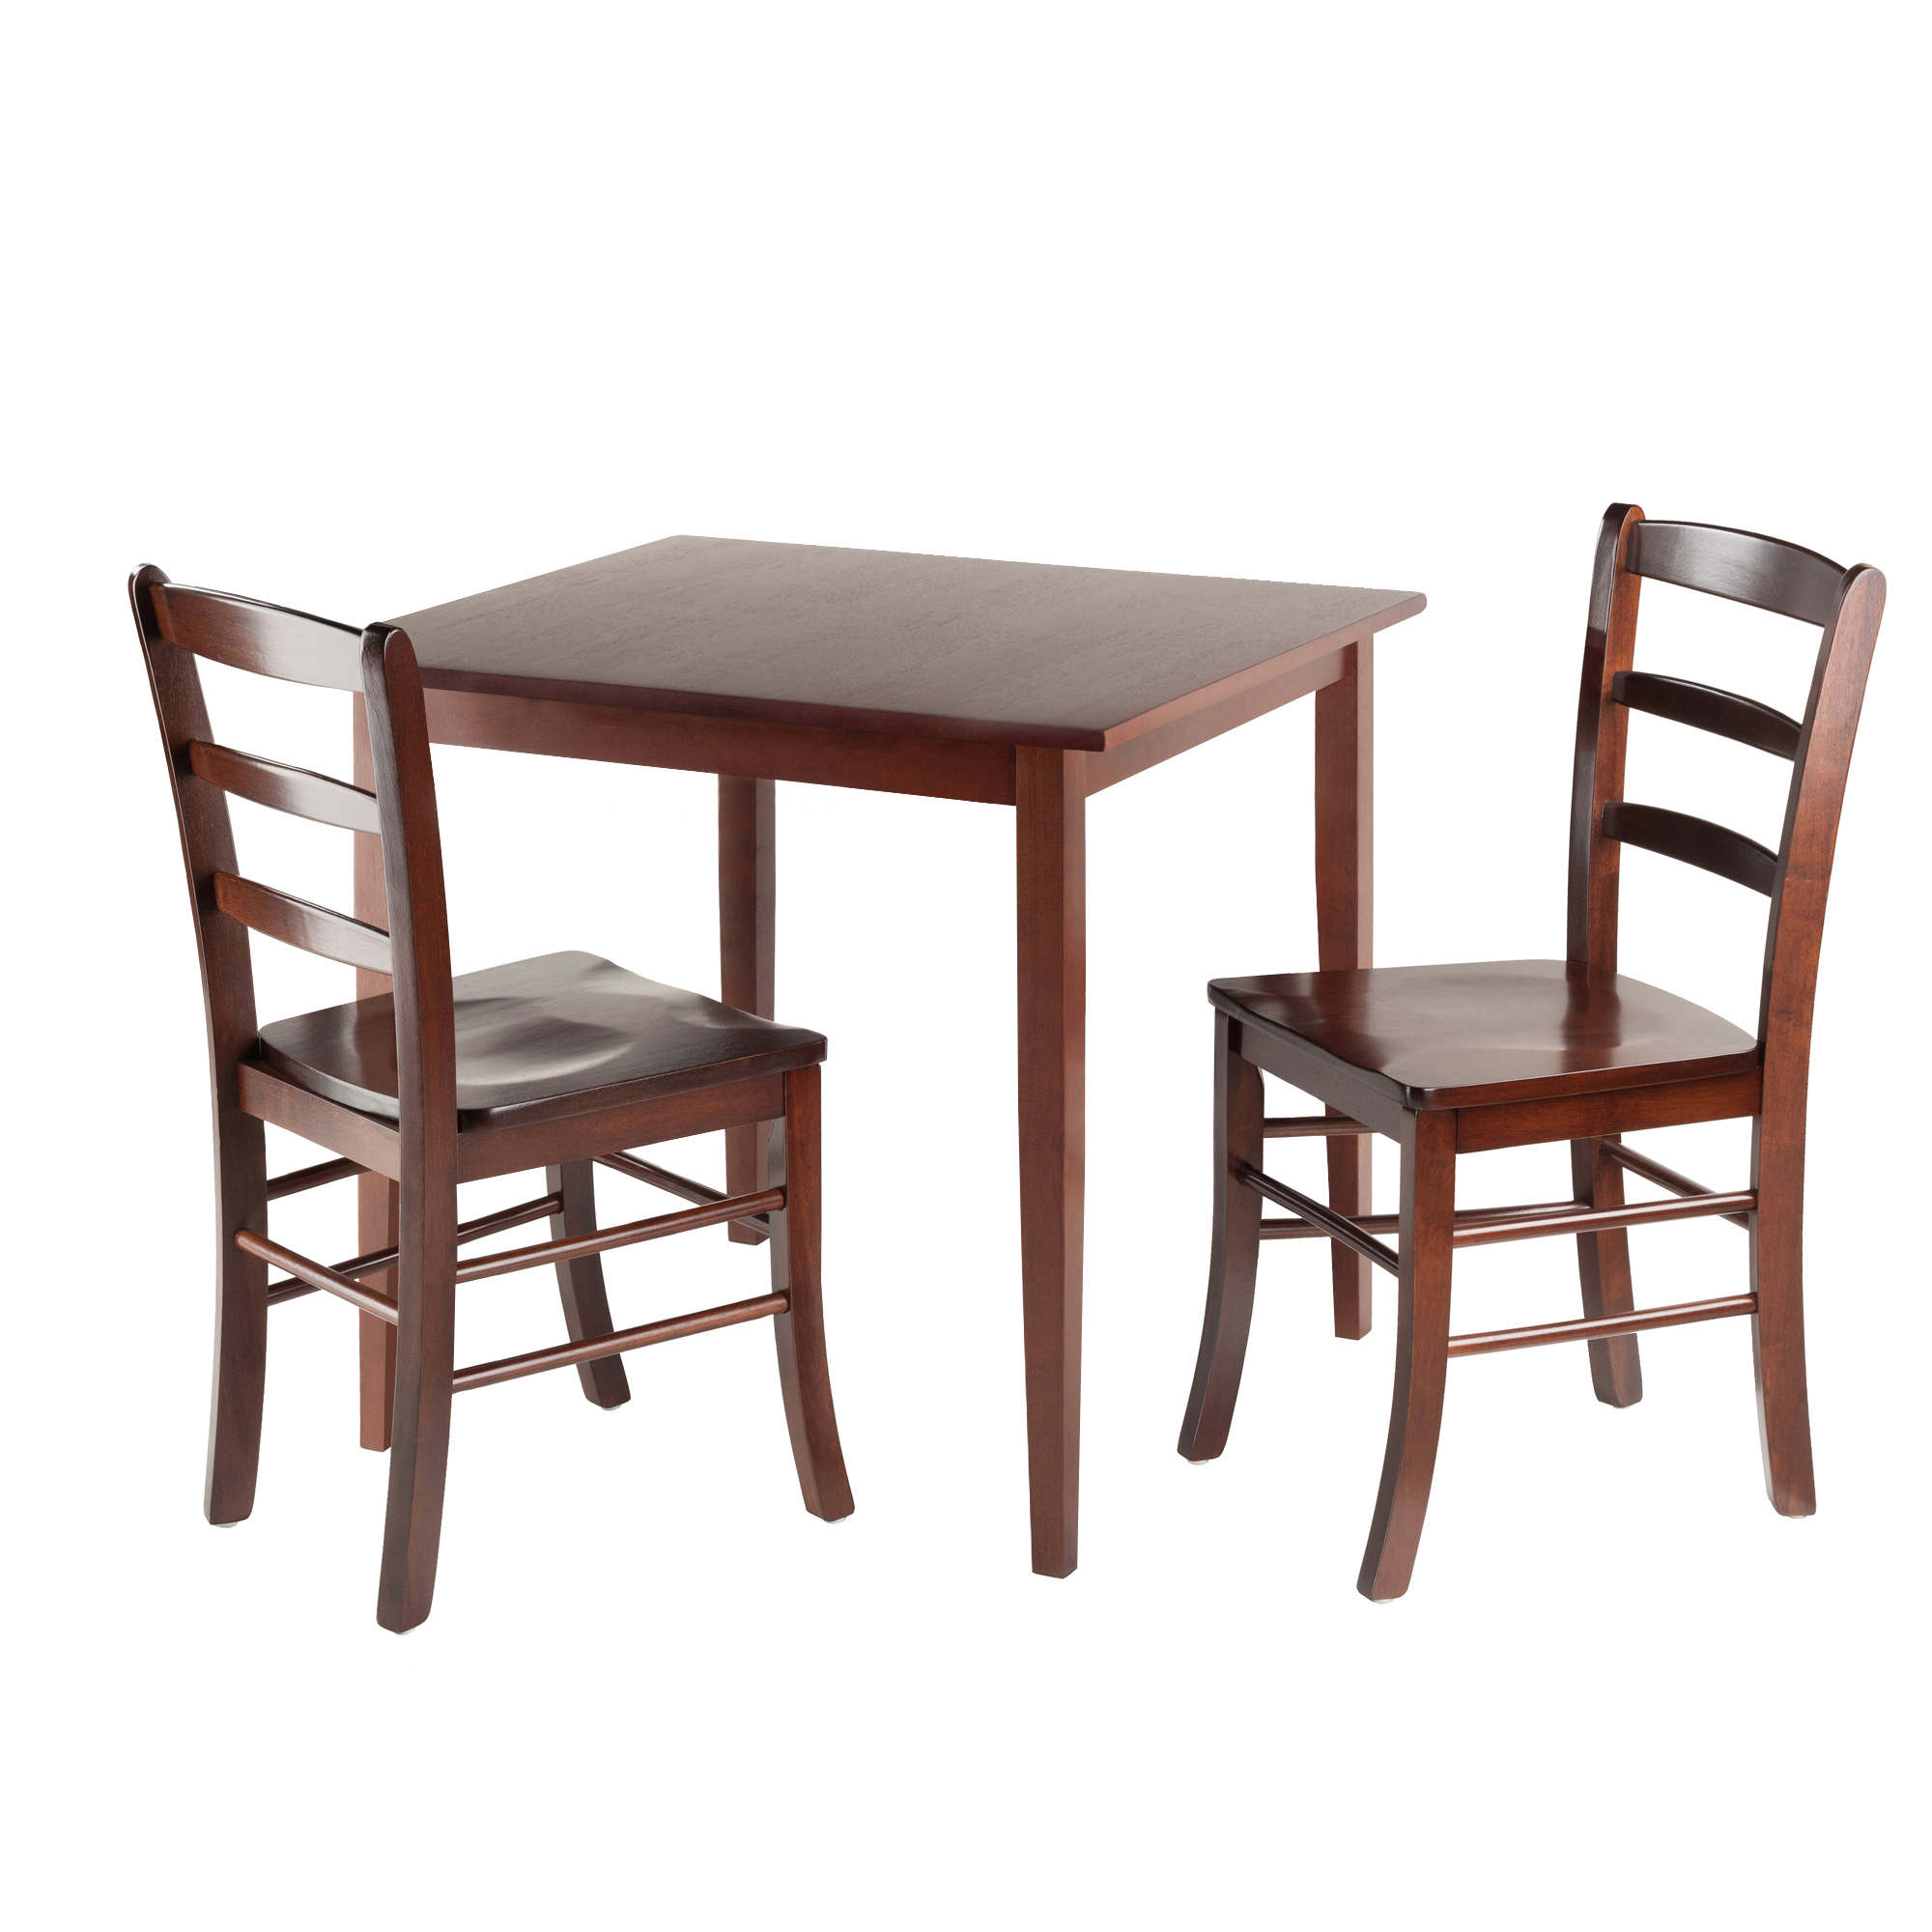 Winsome Groveland 3 Piece Small Dining Set   Antique Walnut | Hayneedle